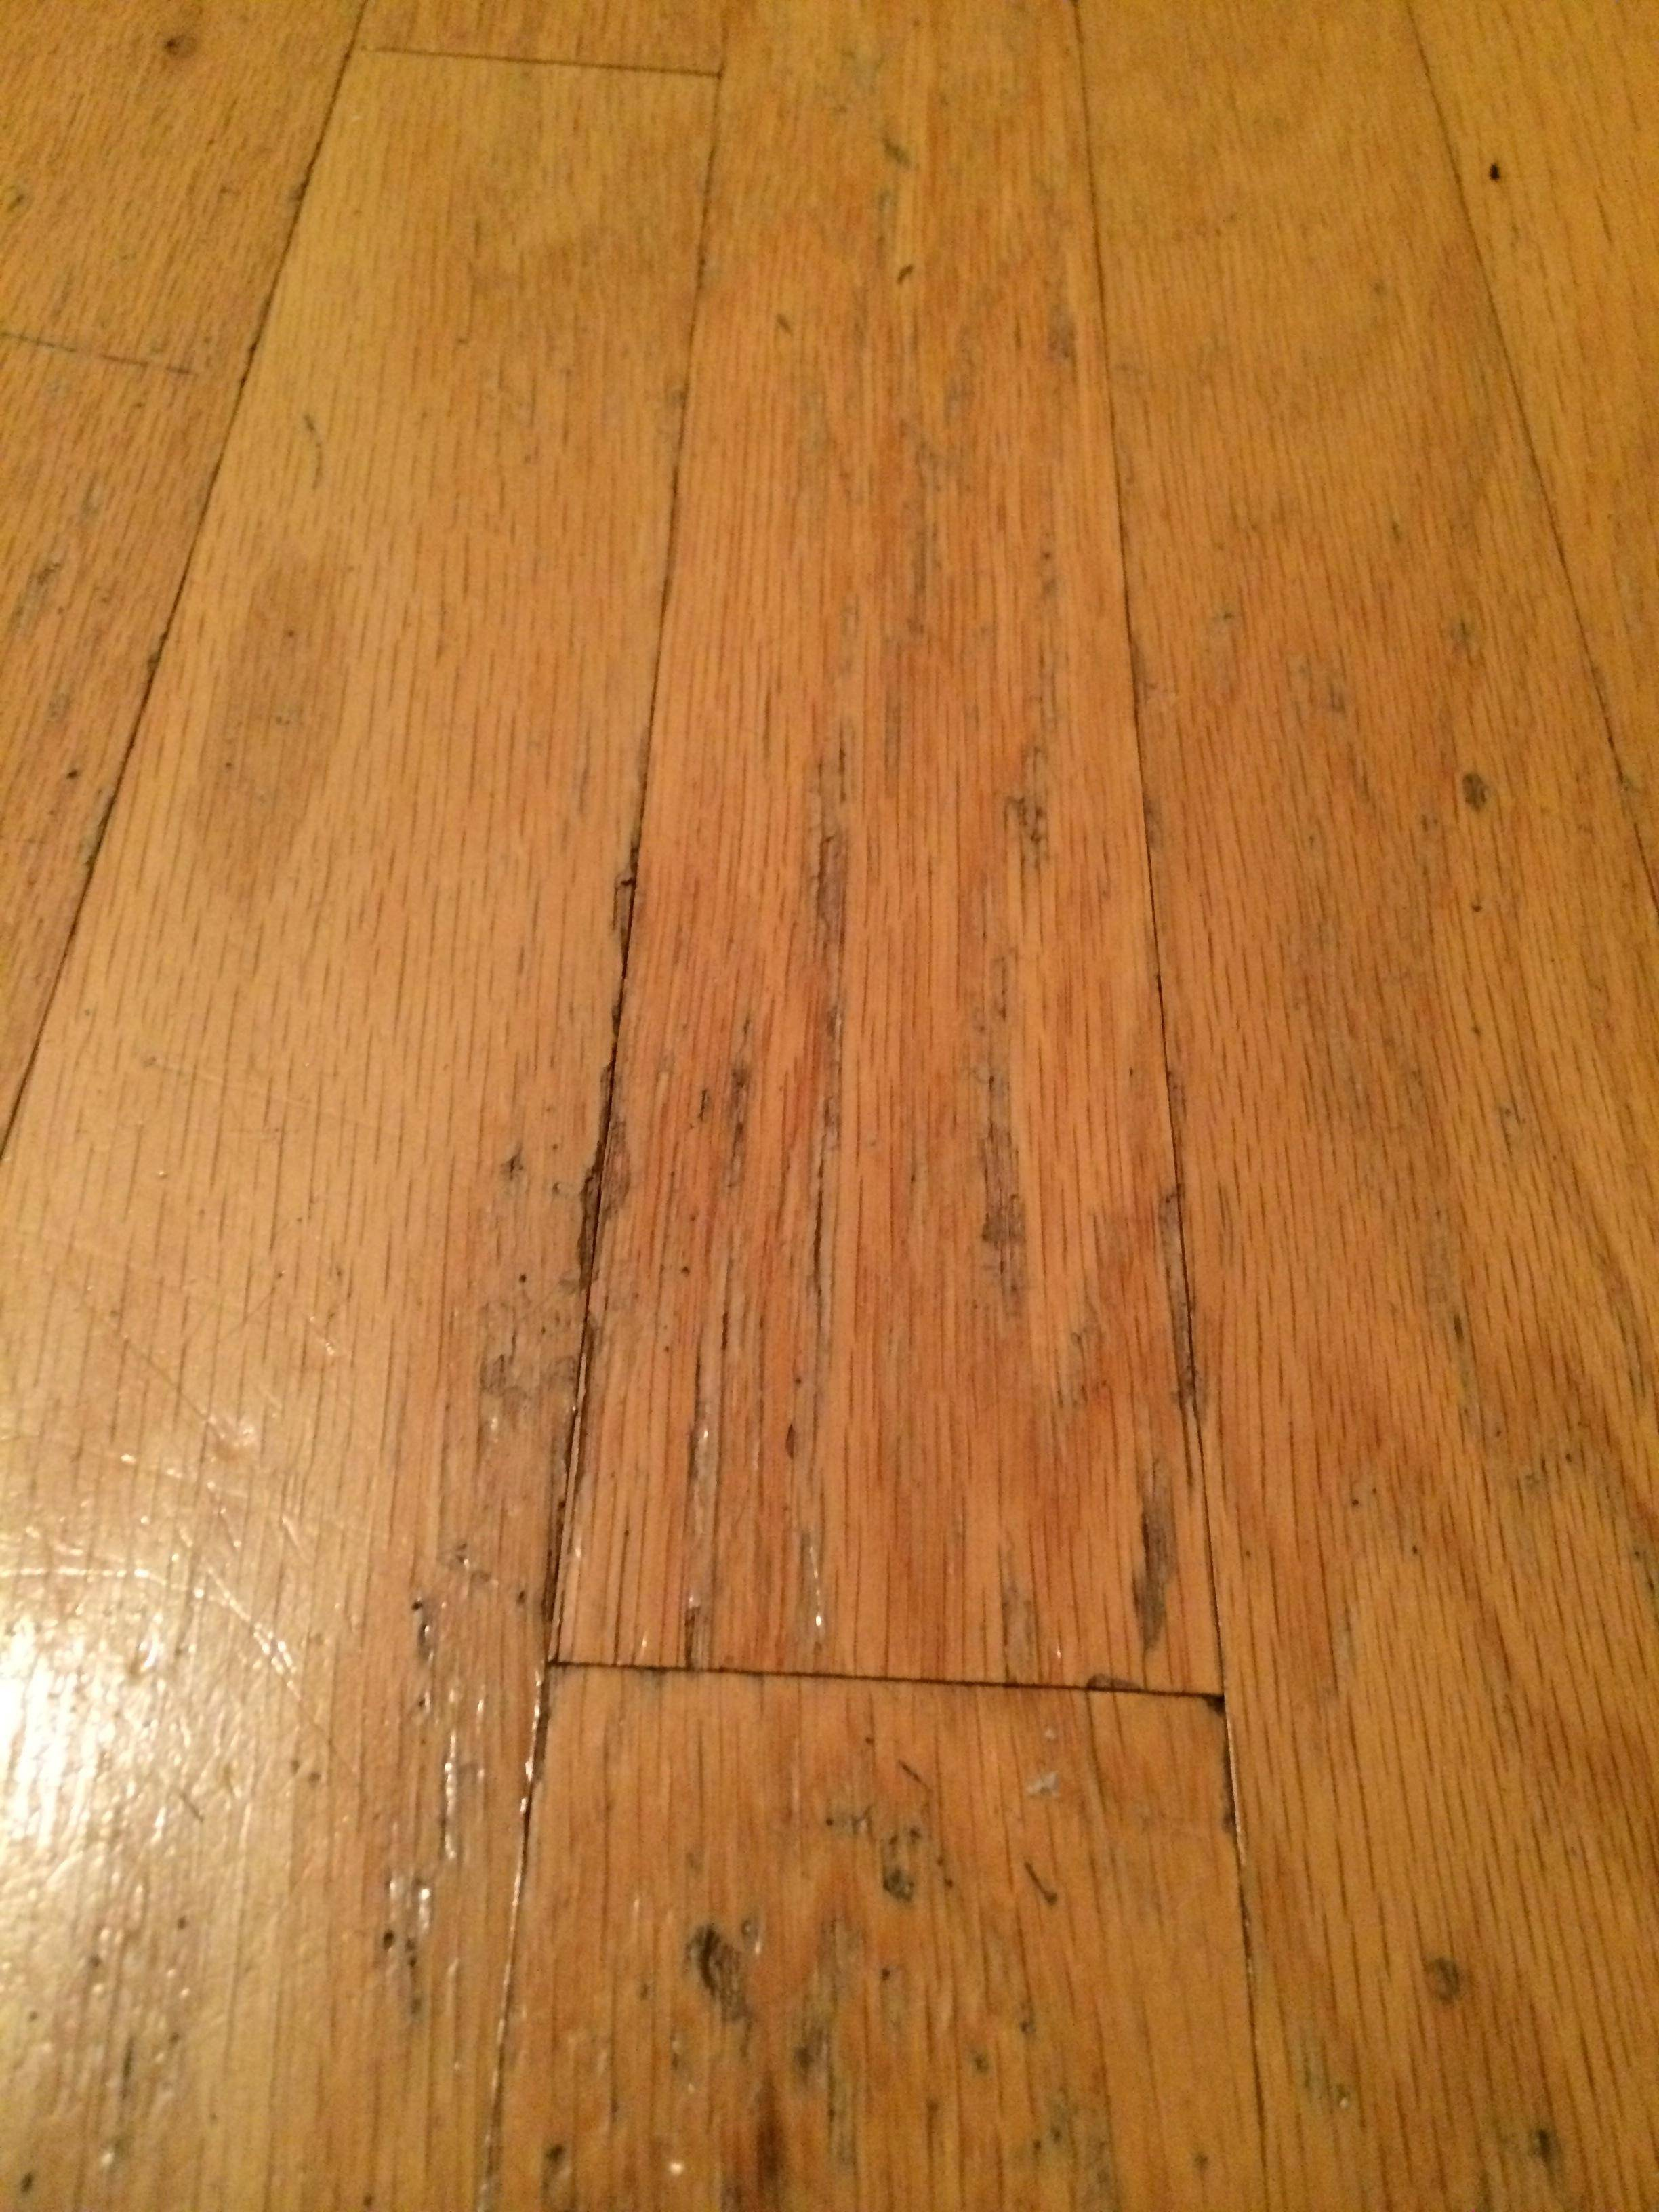 flooring  How can I repair the damage to this wood floor